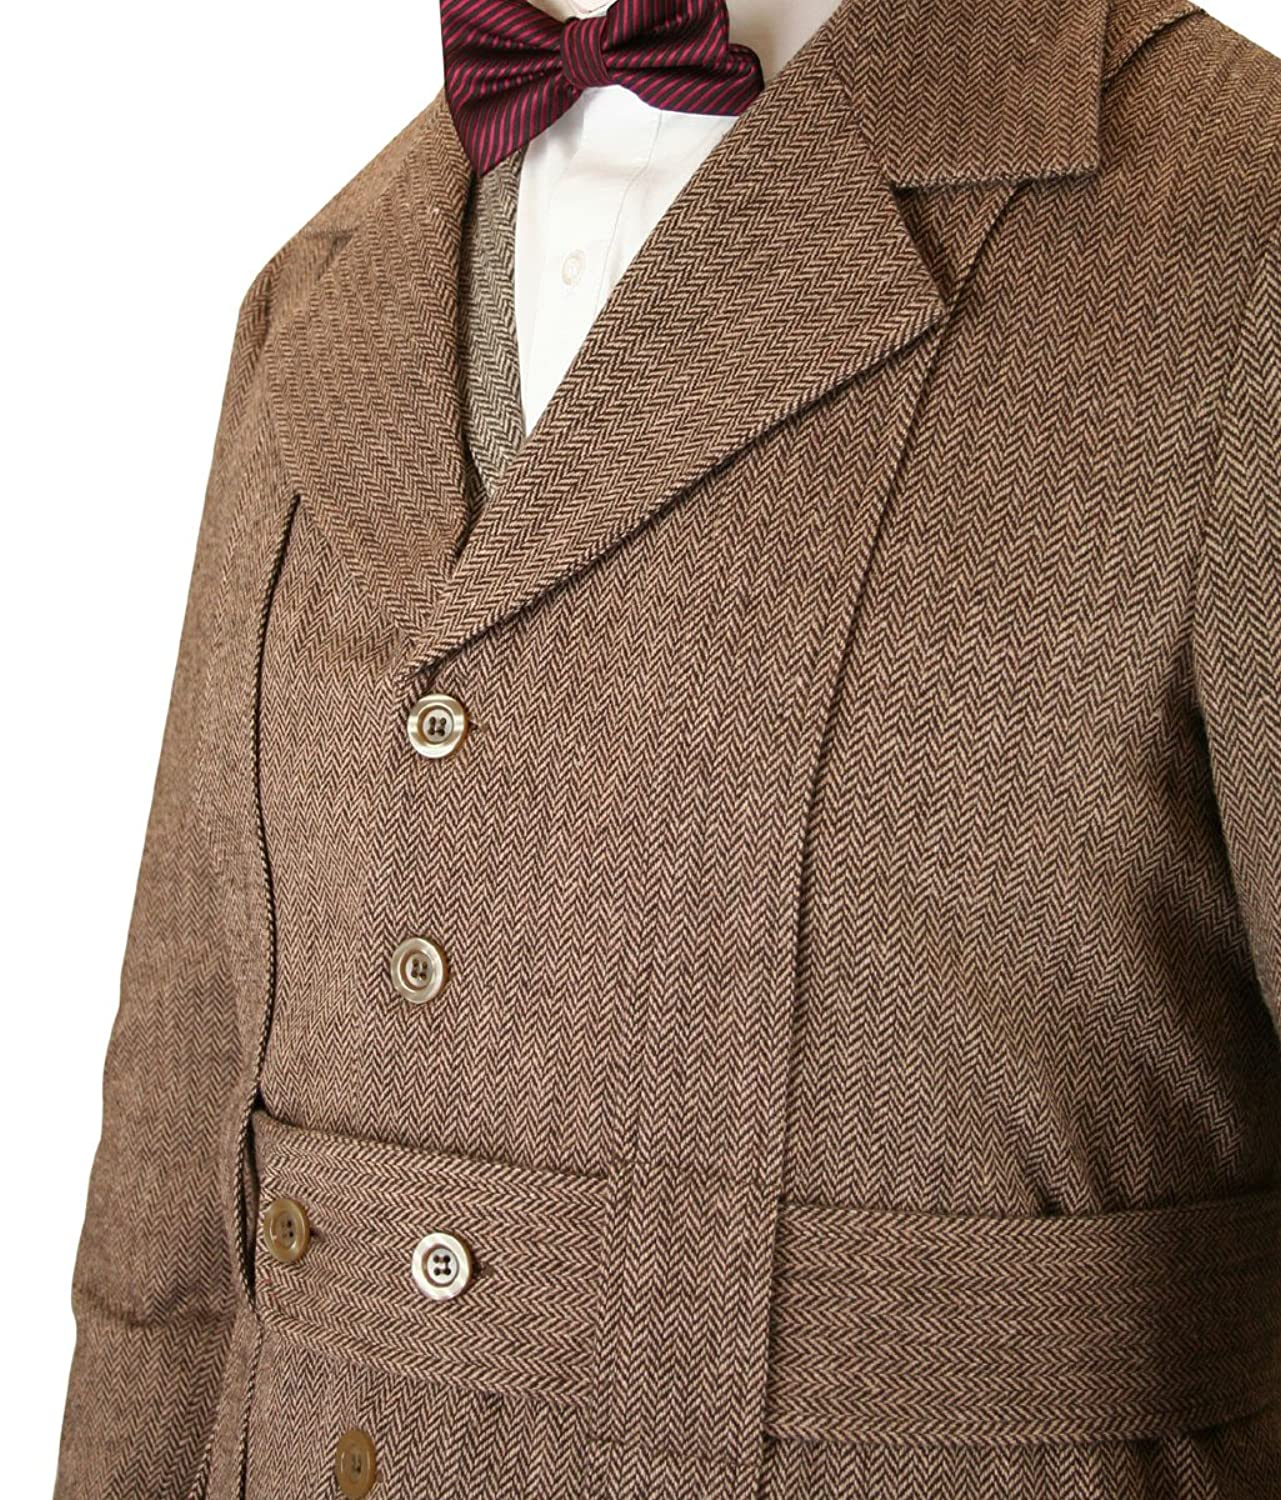 Victorian Mens Suits & Coats Historical Emporium Mens Norfolk Wool Blend Herringbone Tweed Jacket $149.95 AT vintagedancer.com